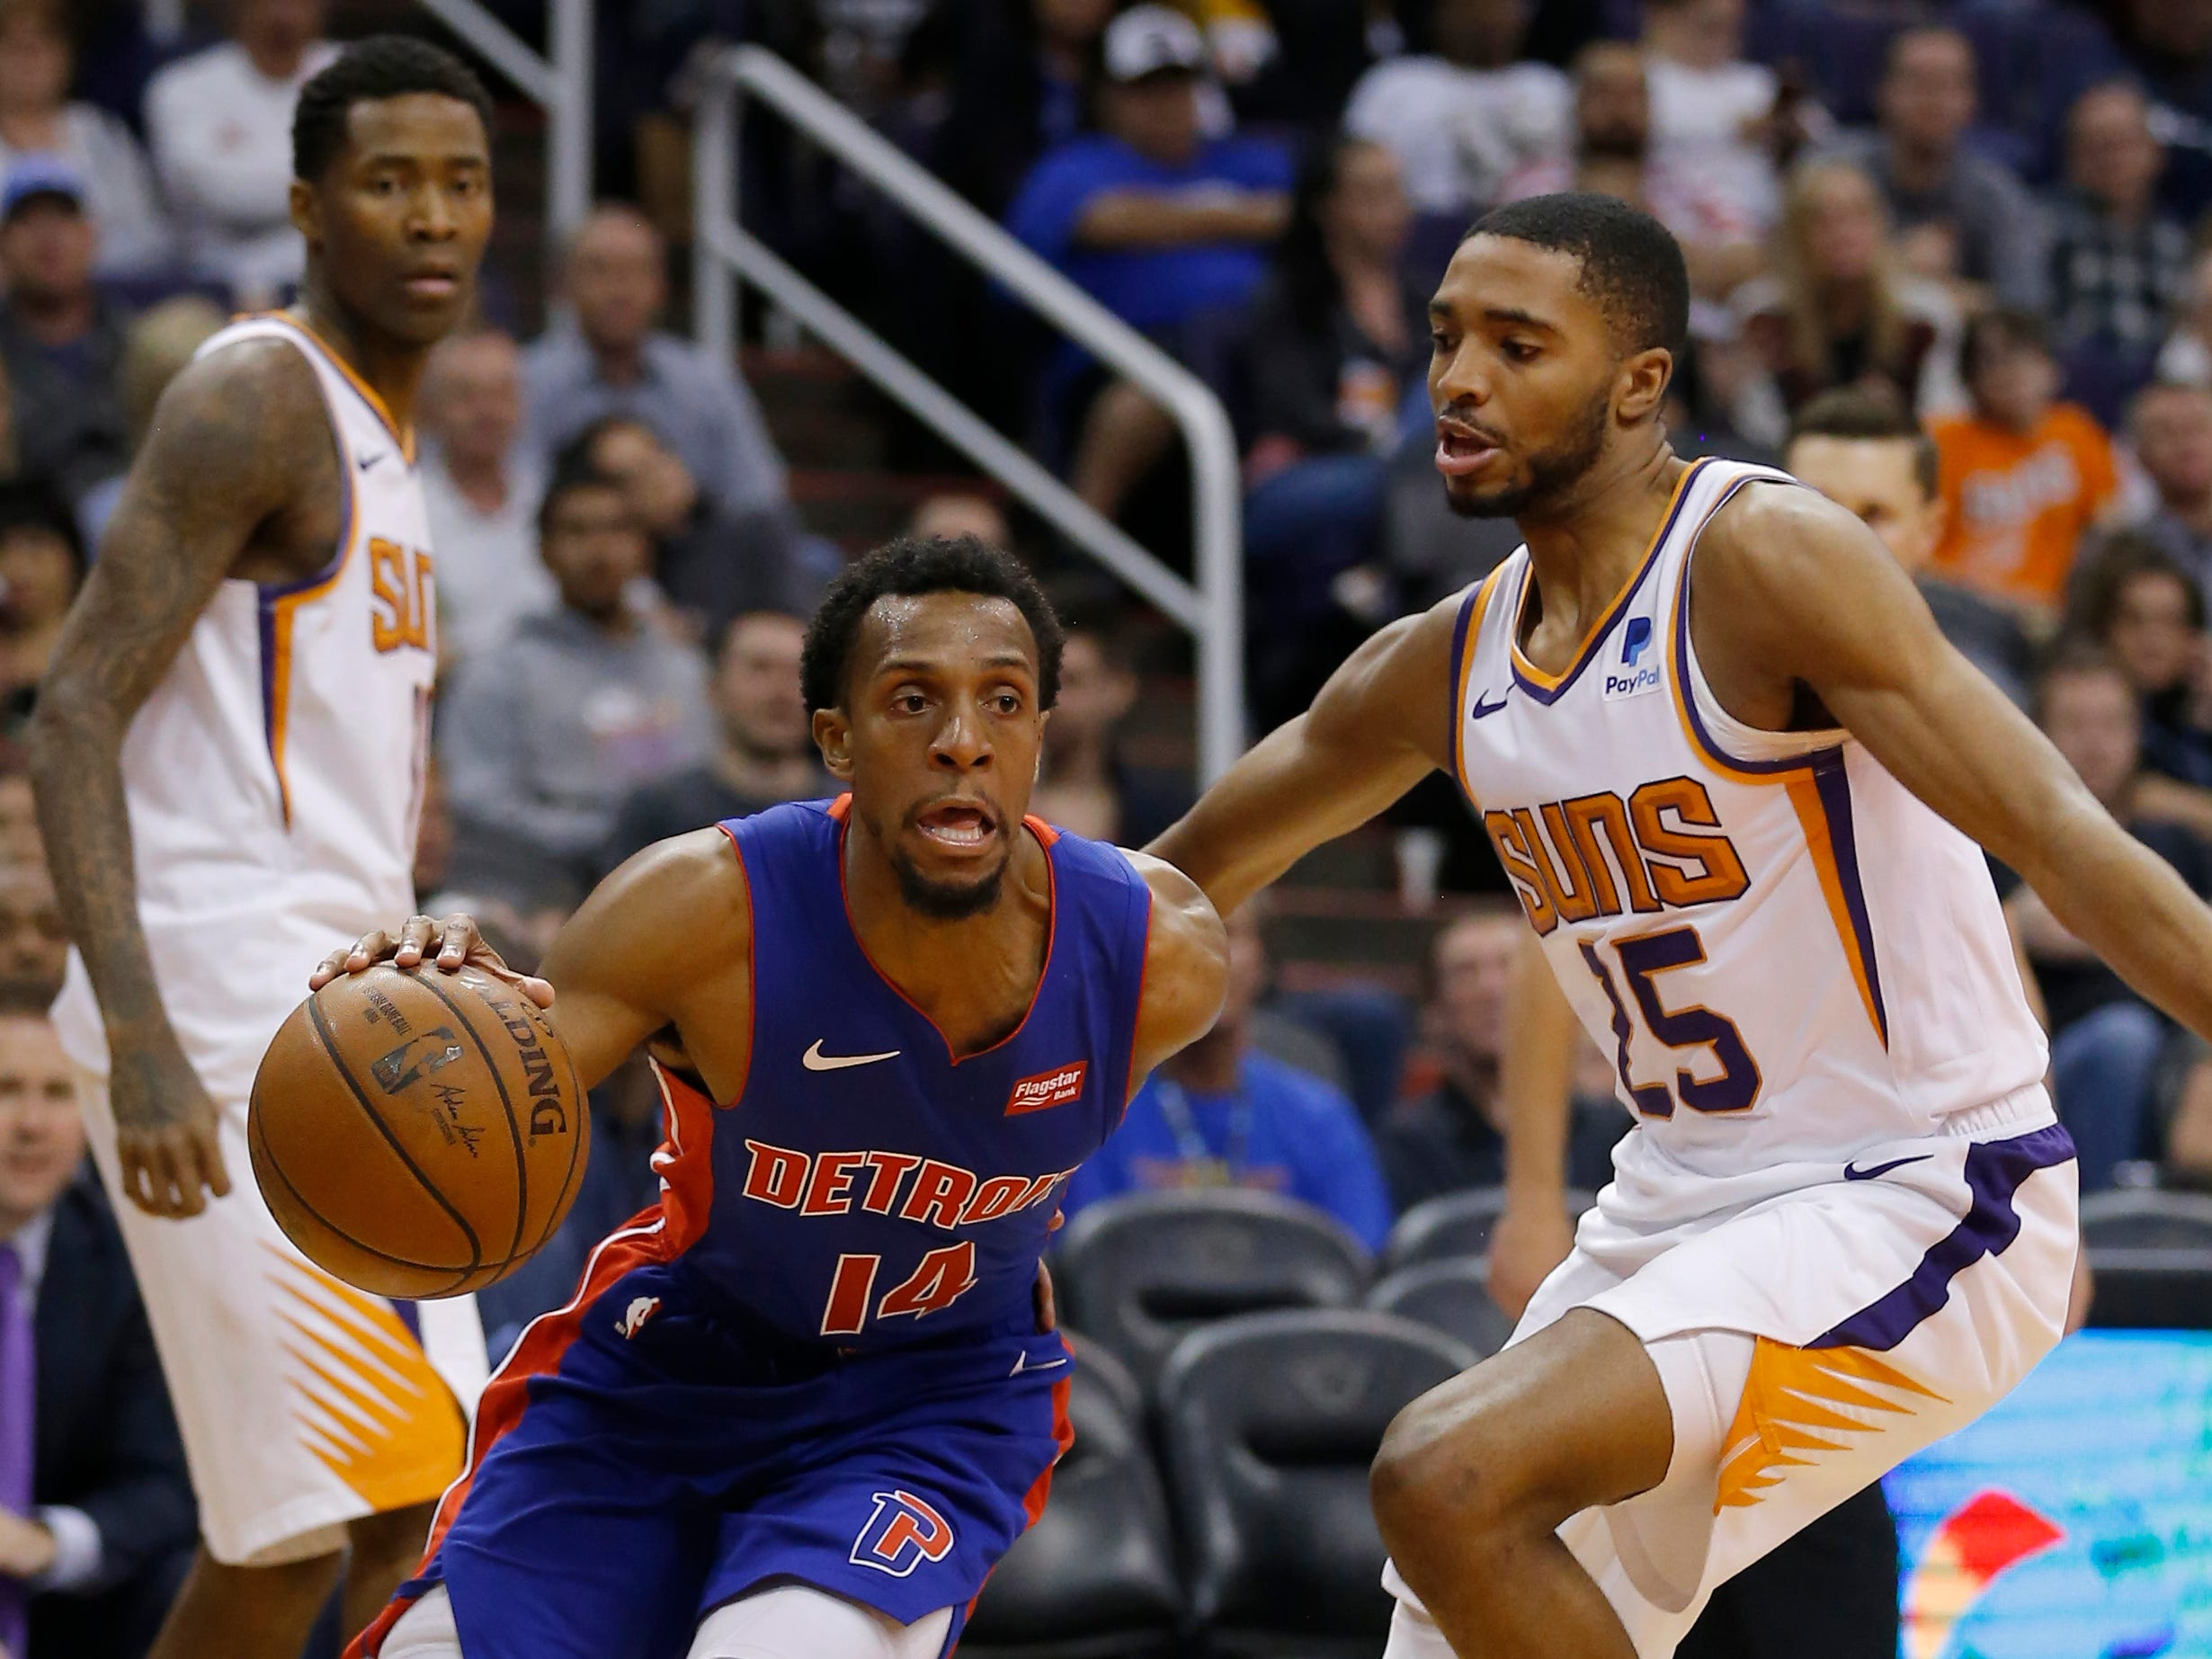 Mar 21, 2019; Phoenix, AZ, USA; Detroit Pistons guard Ish Smith (14) drives past Phoenix Suns forward Mikal Bridges (25) in the second half during an NBA basketball game at Talking Stick Resort Arena.